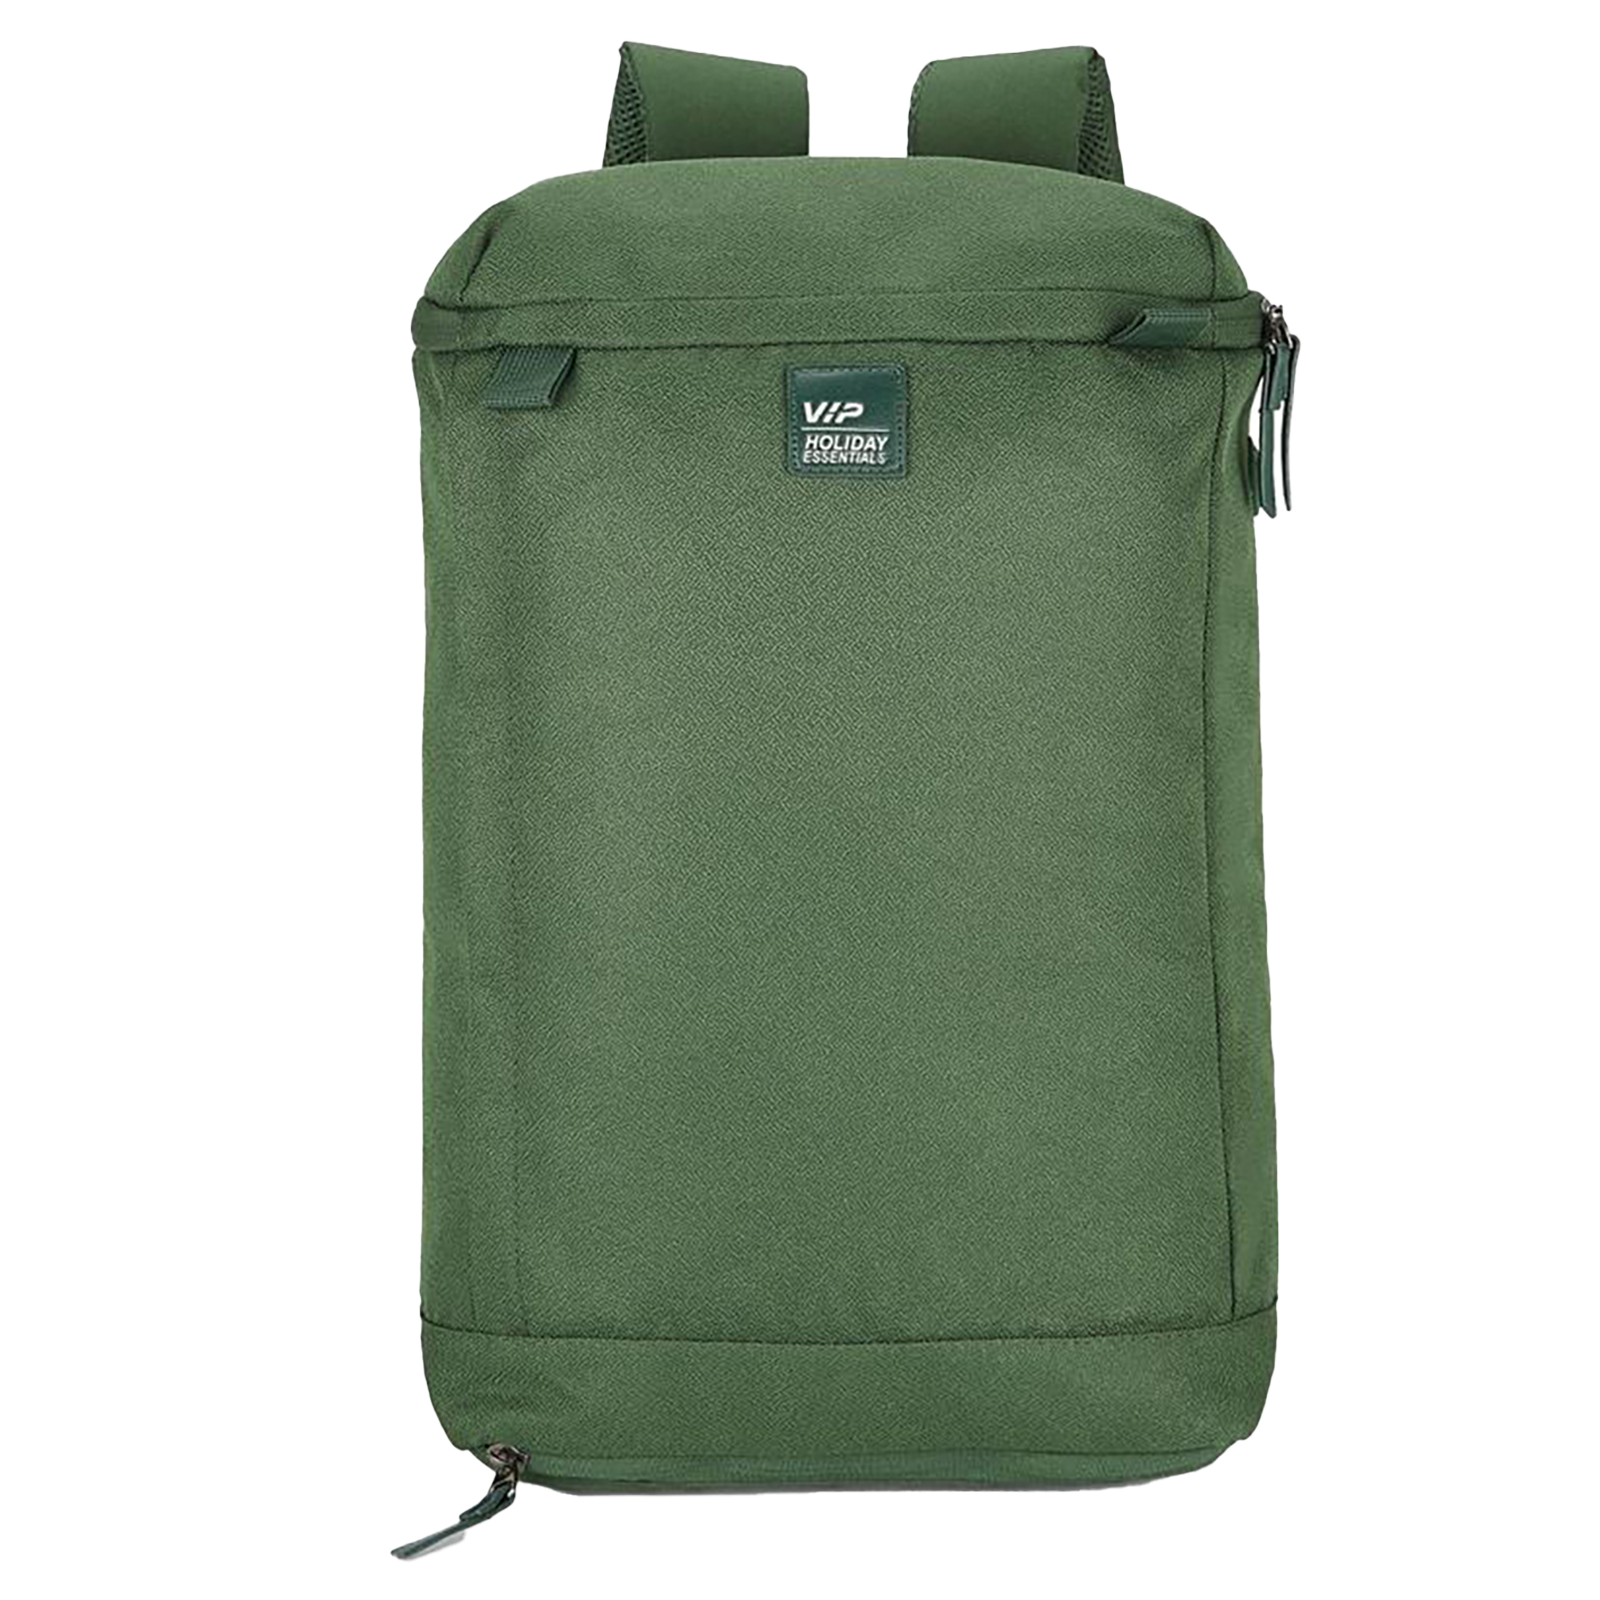 VIP Joey 13 Litres Gucci Backpack (Built To Last Straps, BPJOEYFGN, Forrest Green)_1